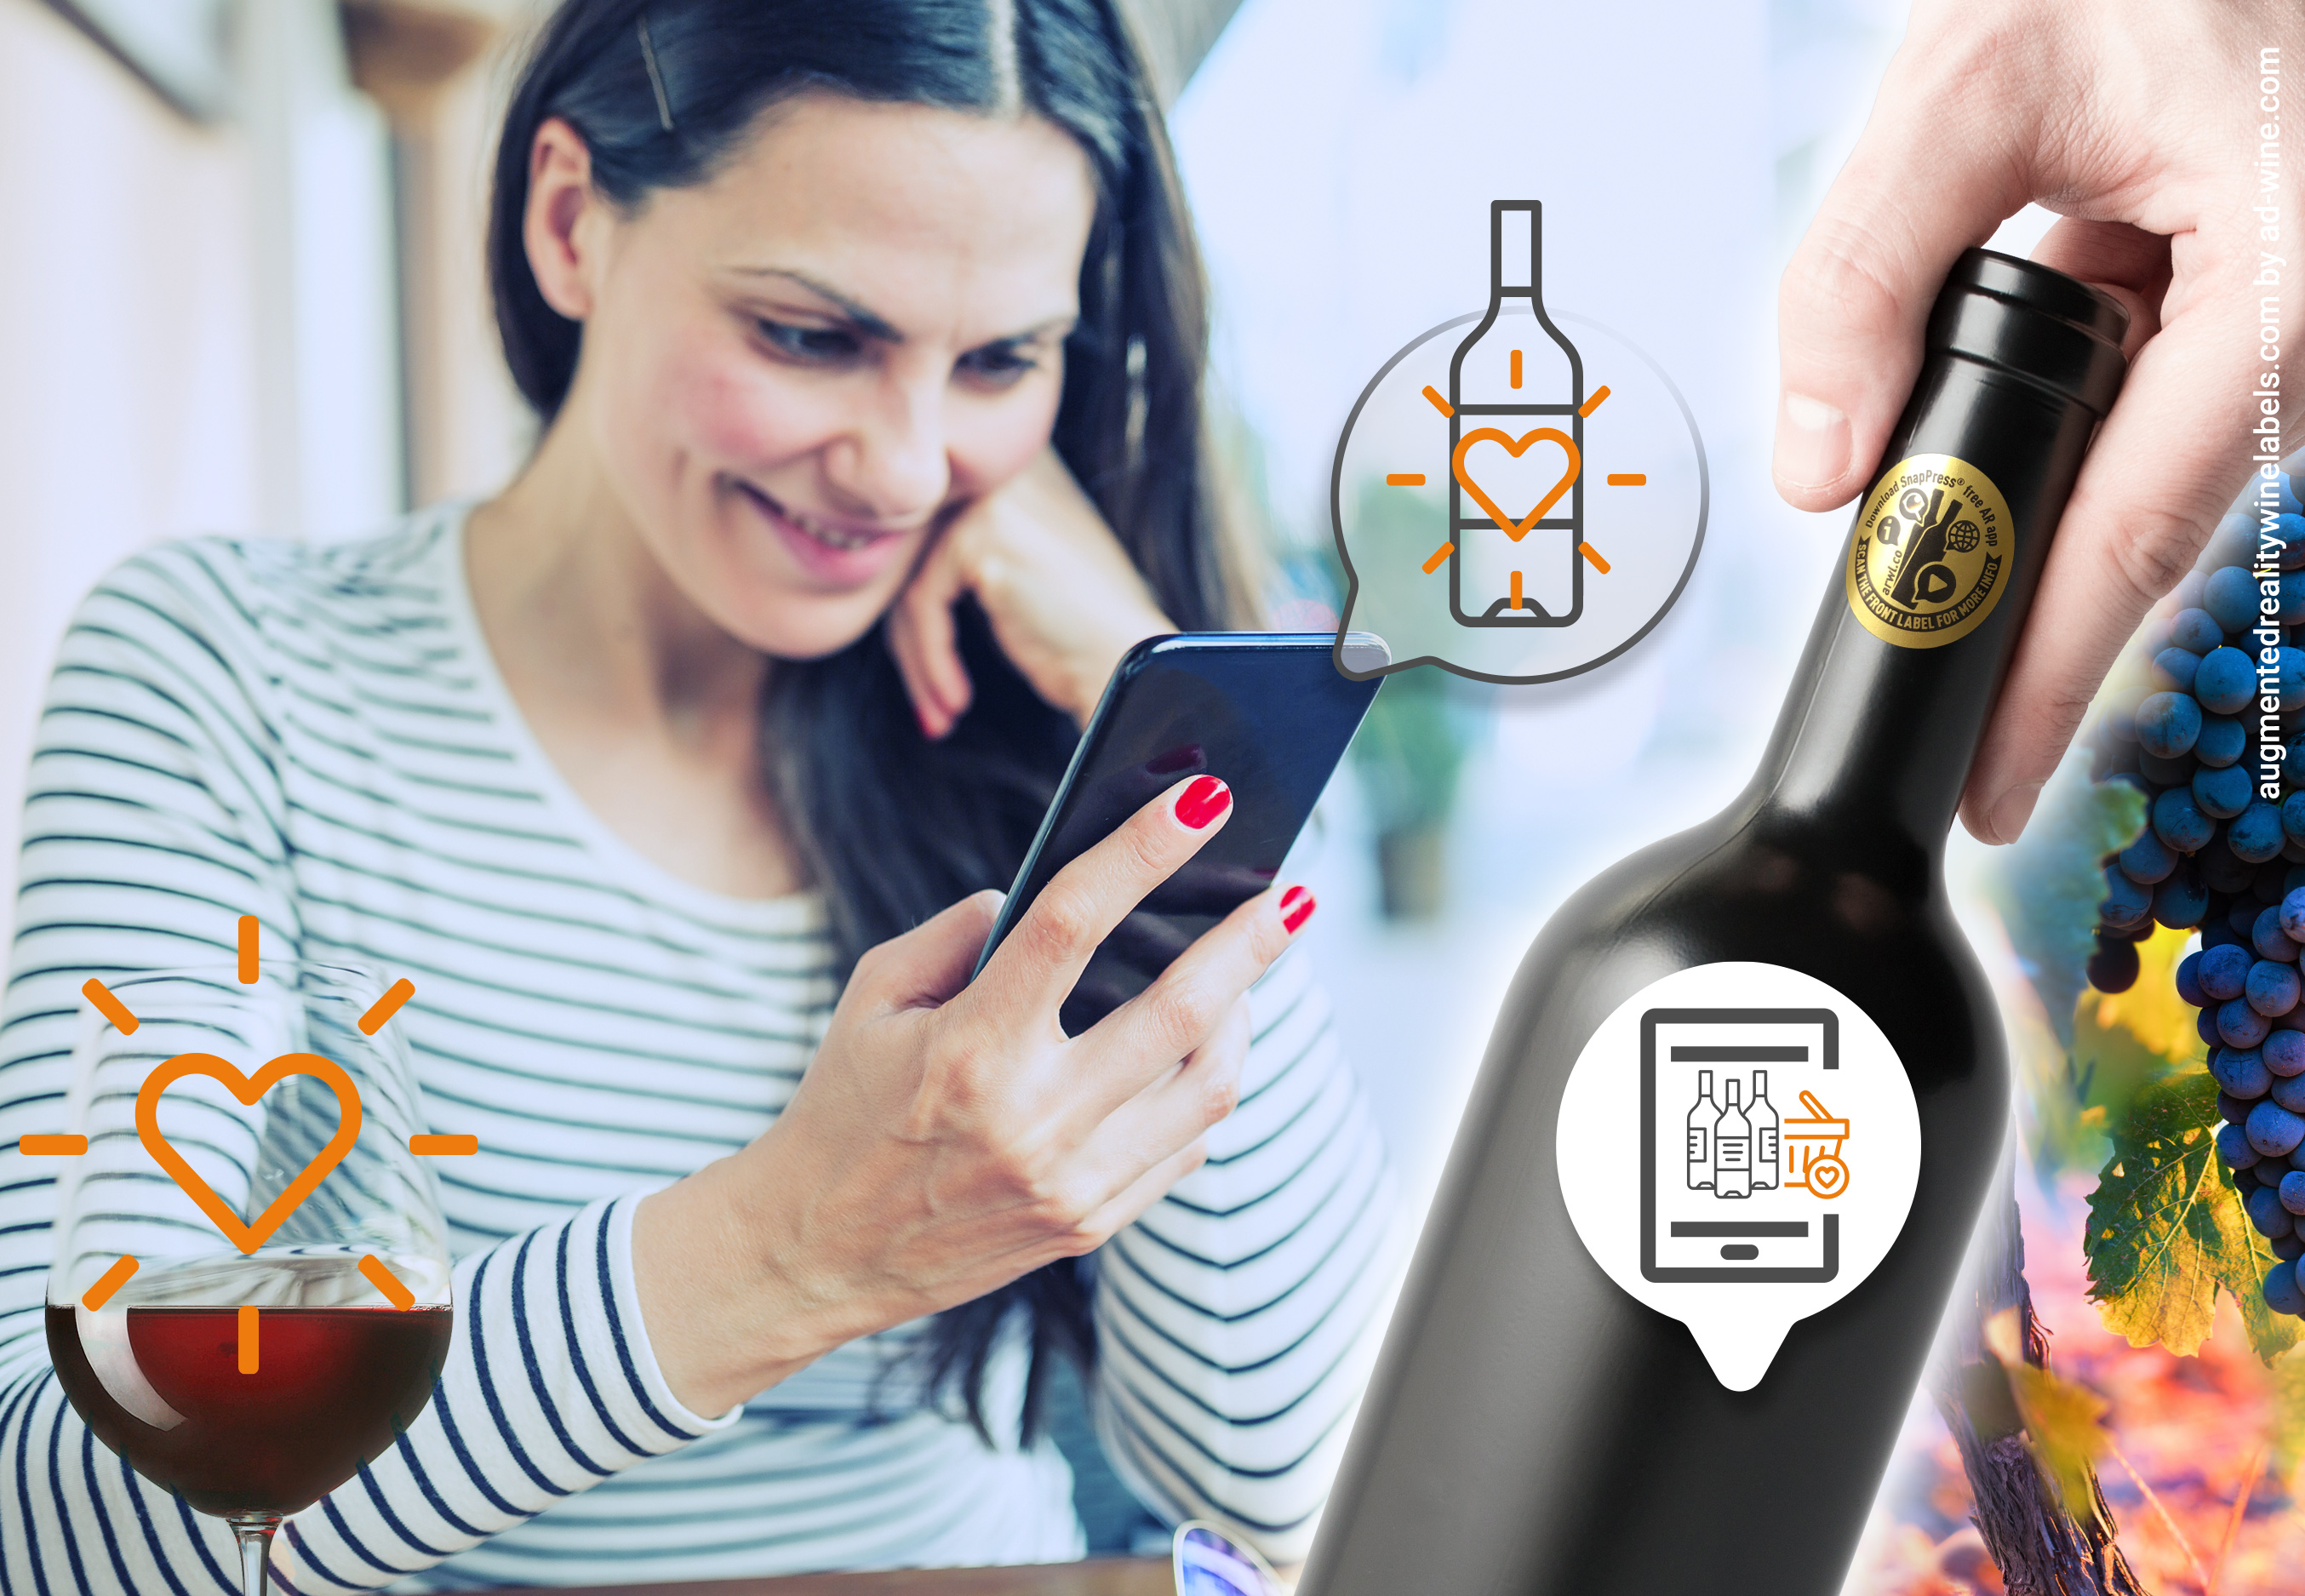 Connected wine label generates engagement